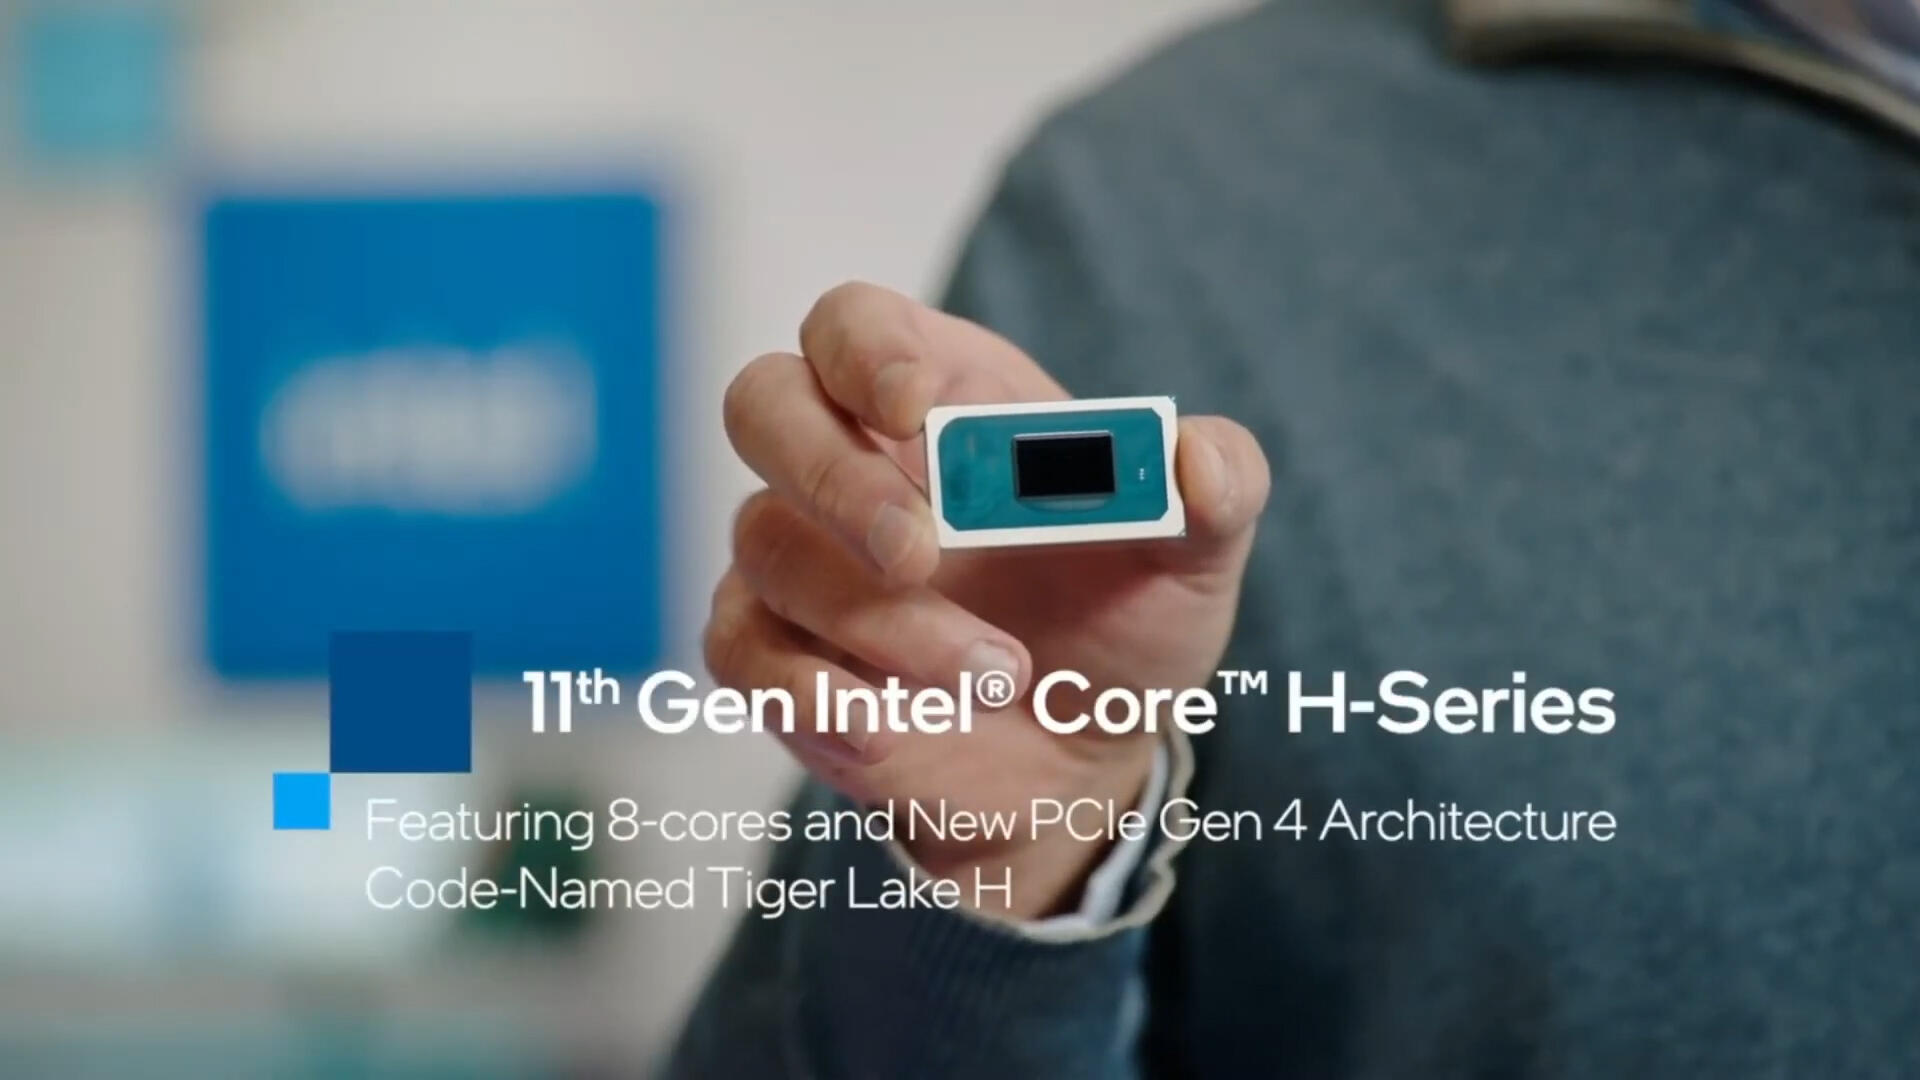 Video: Mobile and desktop gaming: Intel reveals S-series and H-series processors at CES 2021